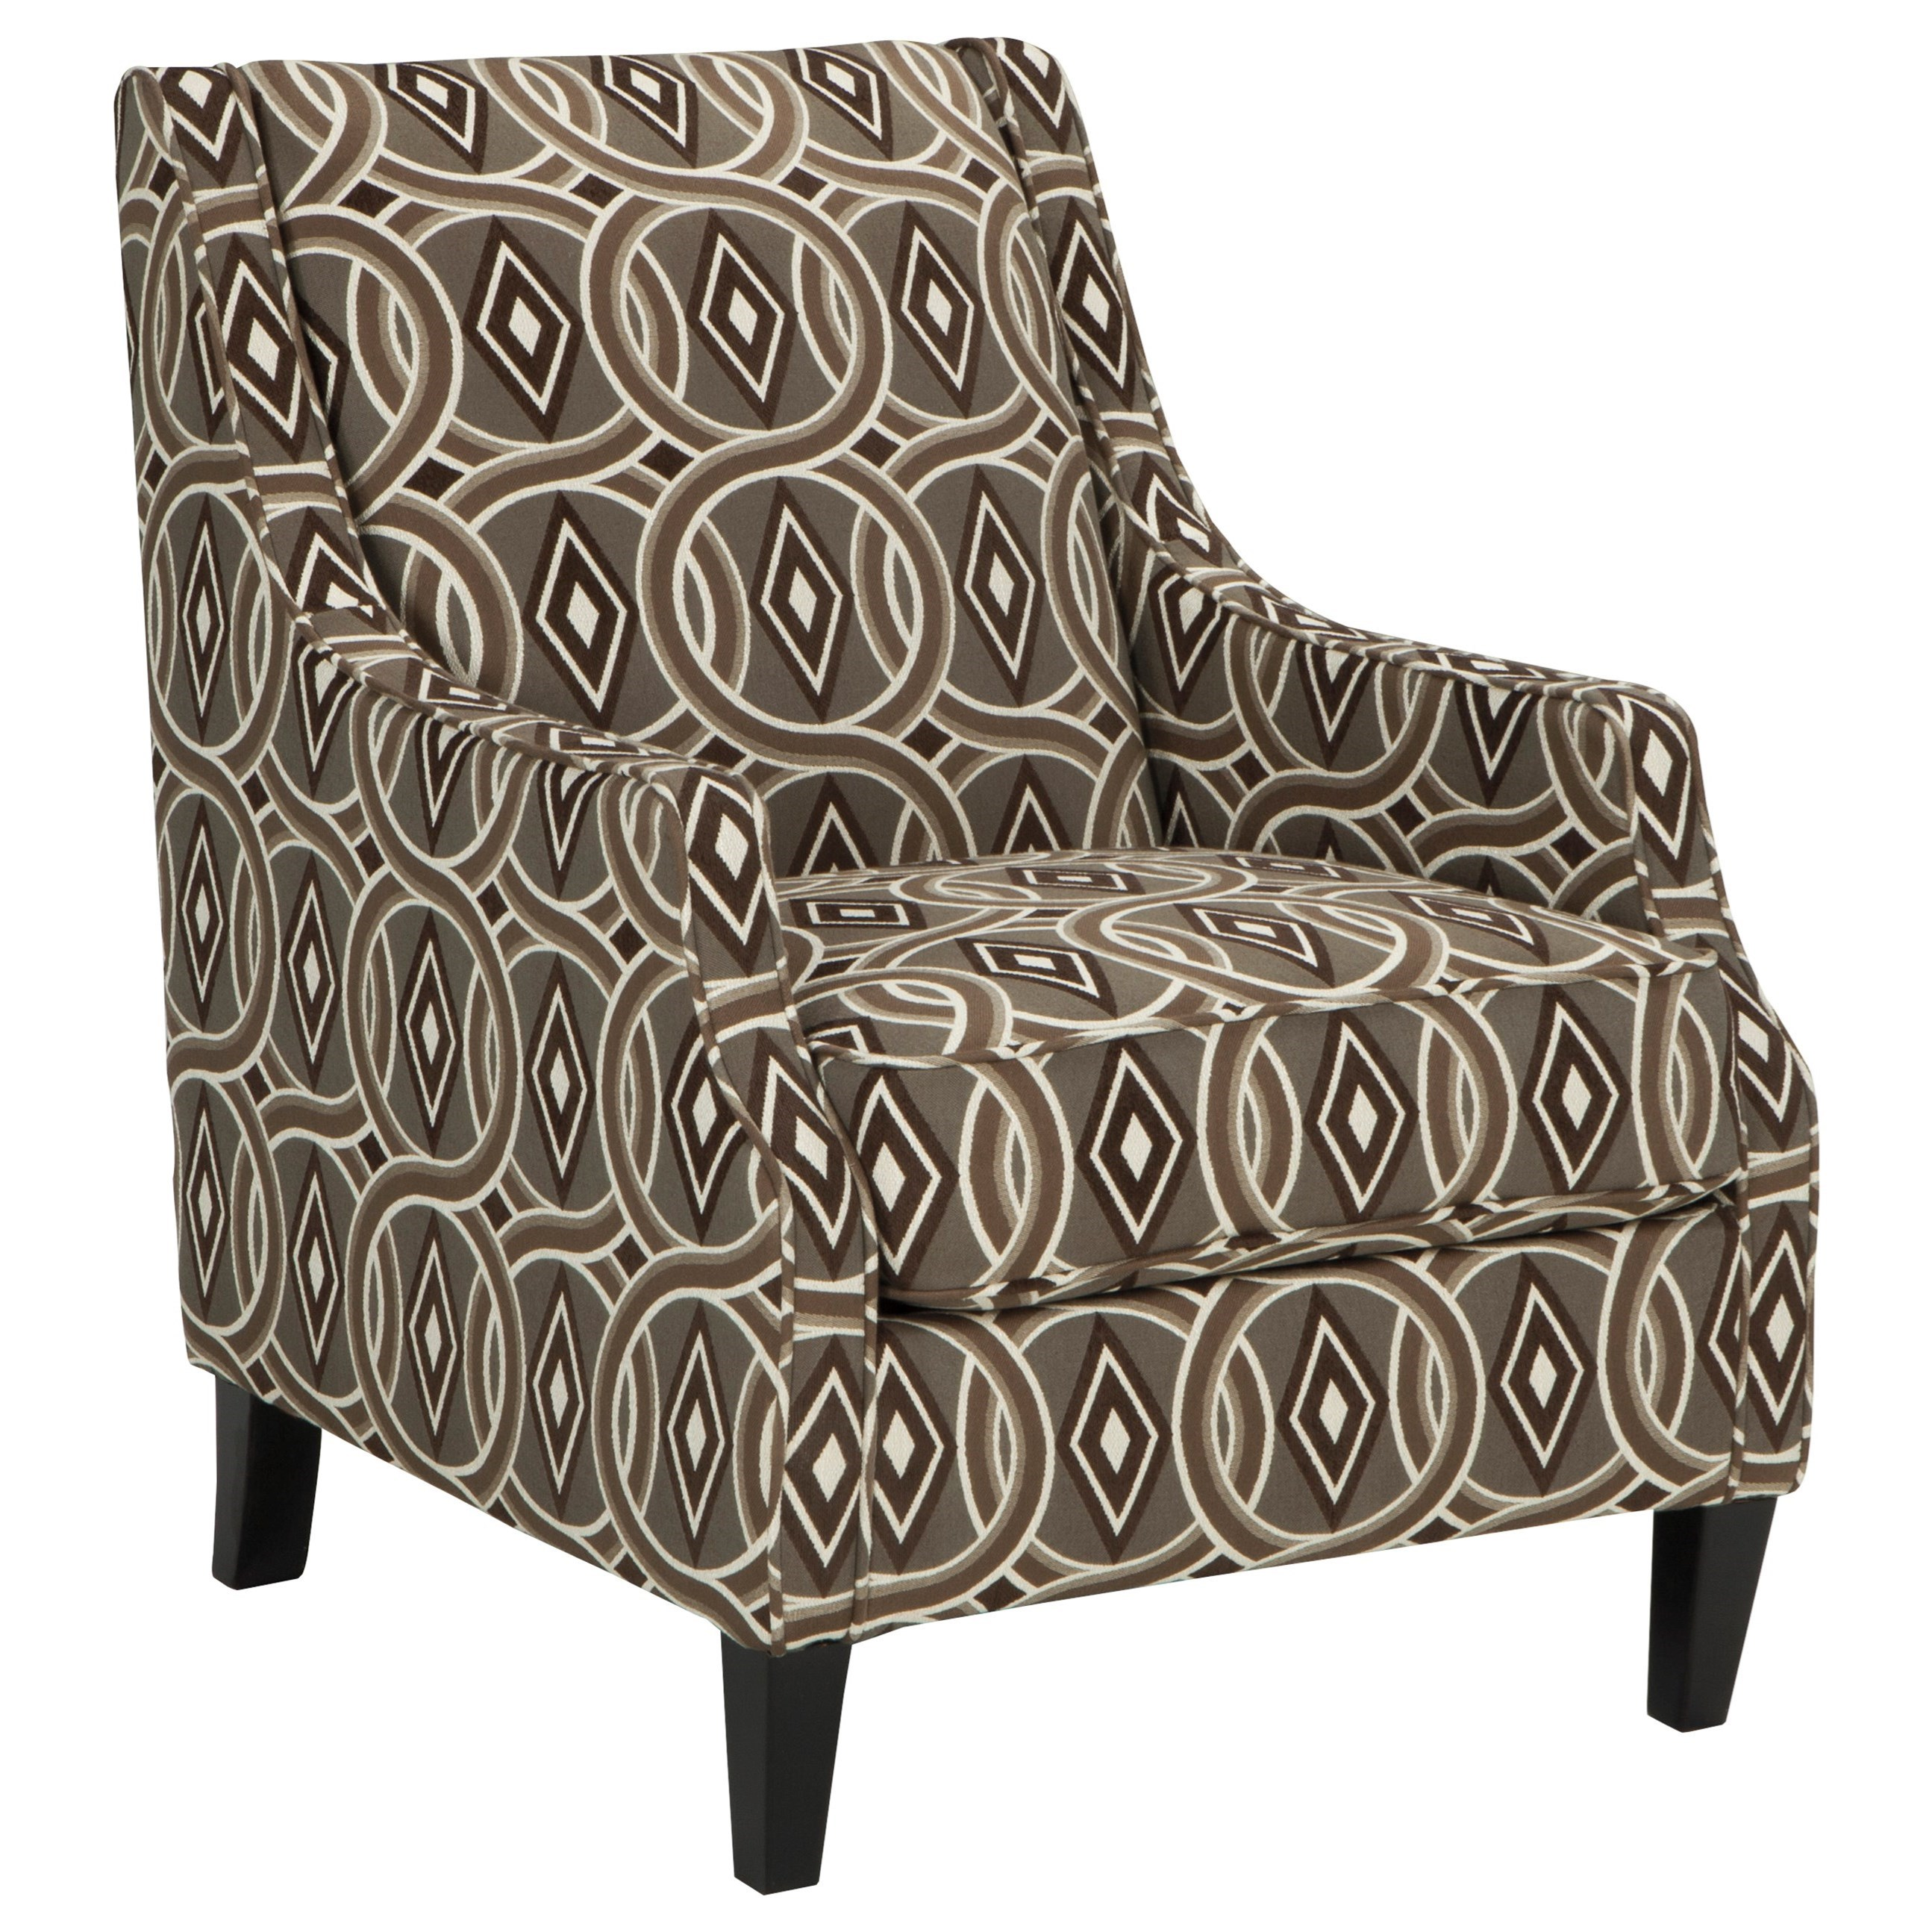 Ashley Furniture Bernat 3510021 Accent Chair With Scoop Arms Del Sol Furniture Upholstered